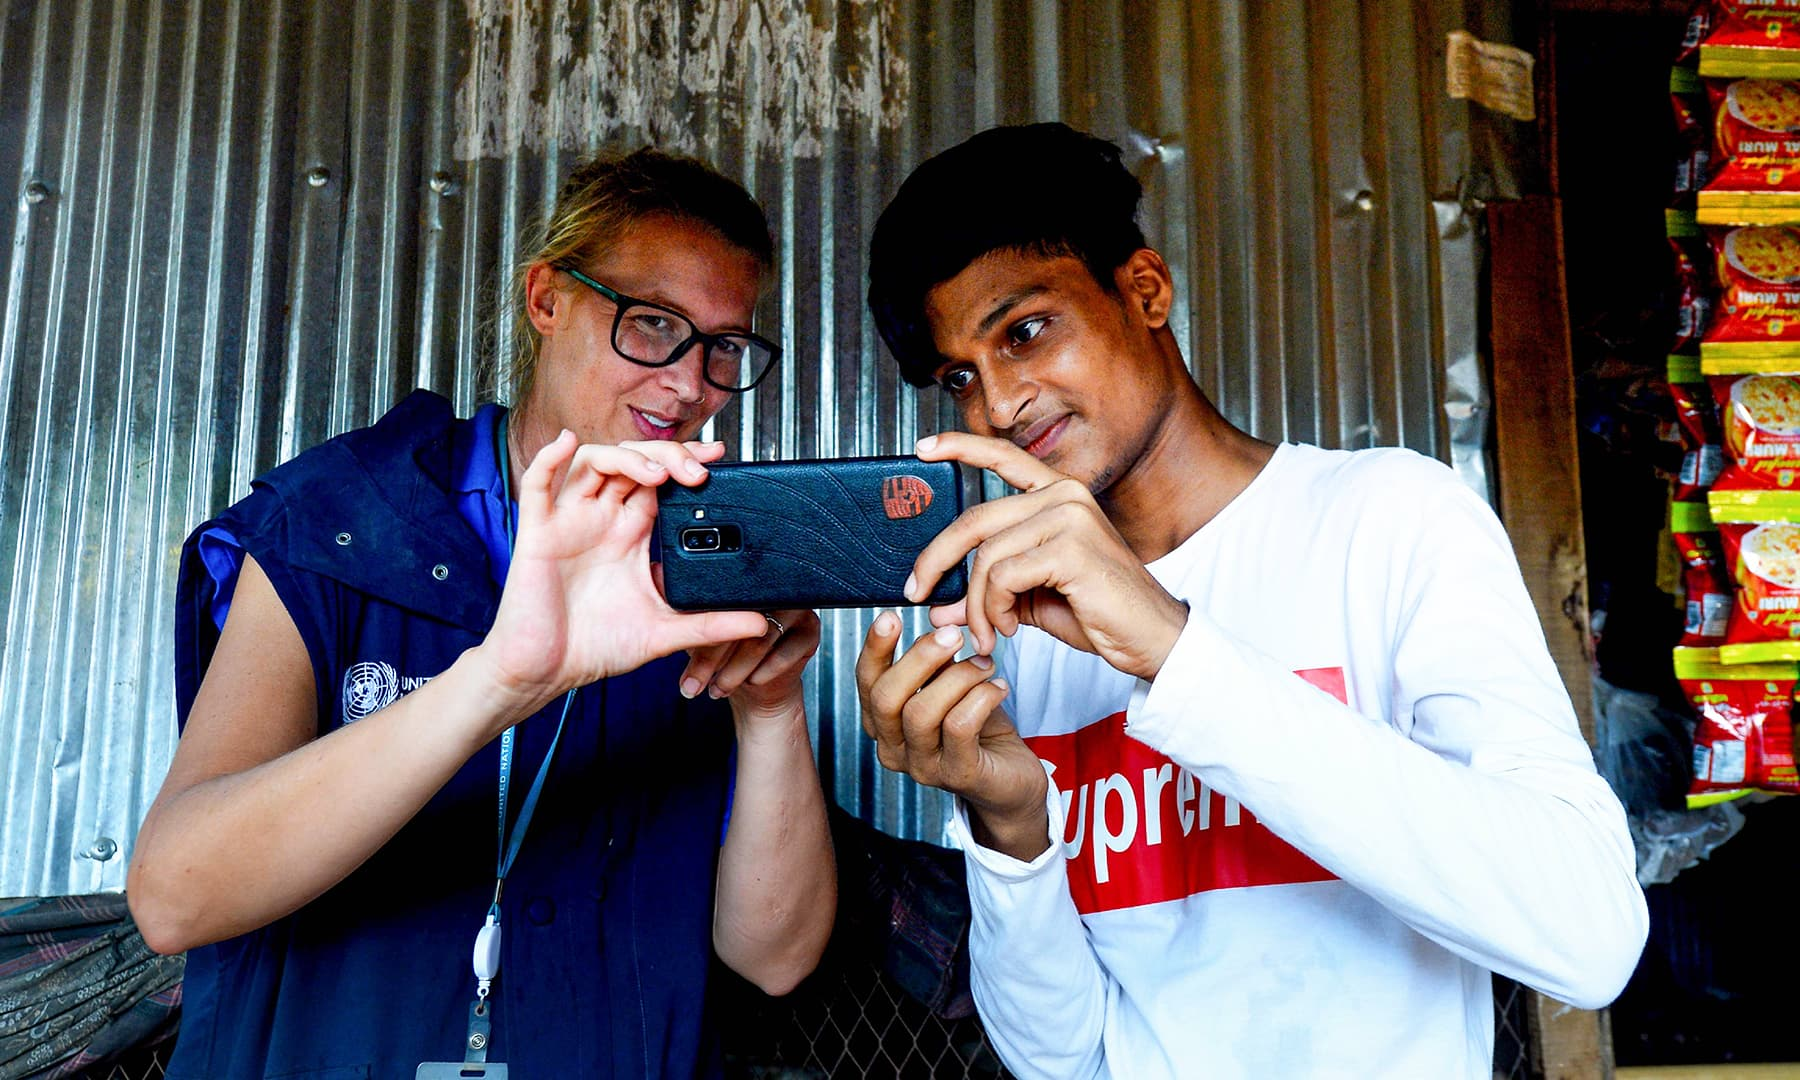 WFP official Gemma Snowdon coaches Rohingya youth Mohammad Rafiq on methods to take better photos with his mobile phone at the Kutupalong refugee camp. — AFP